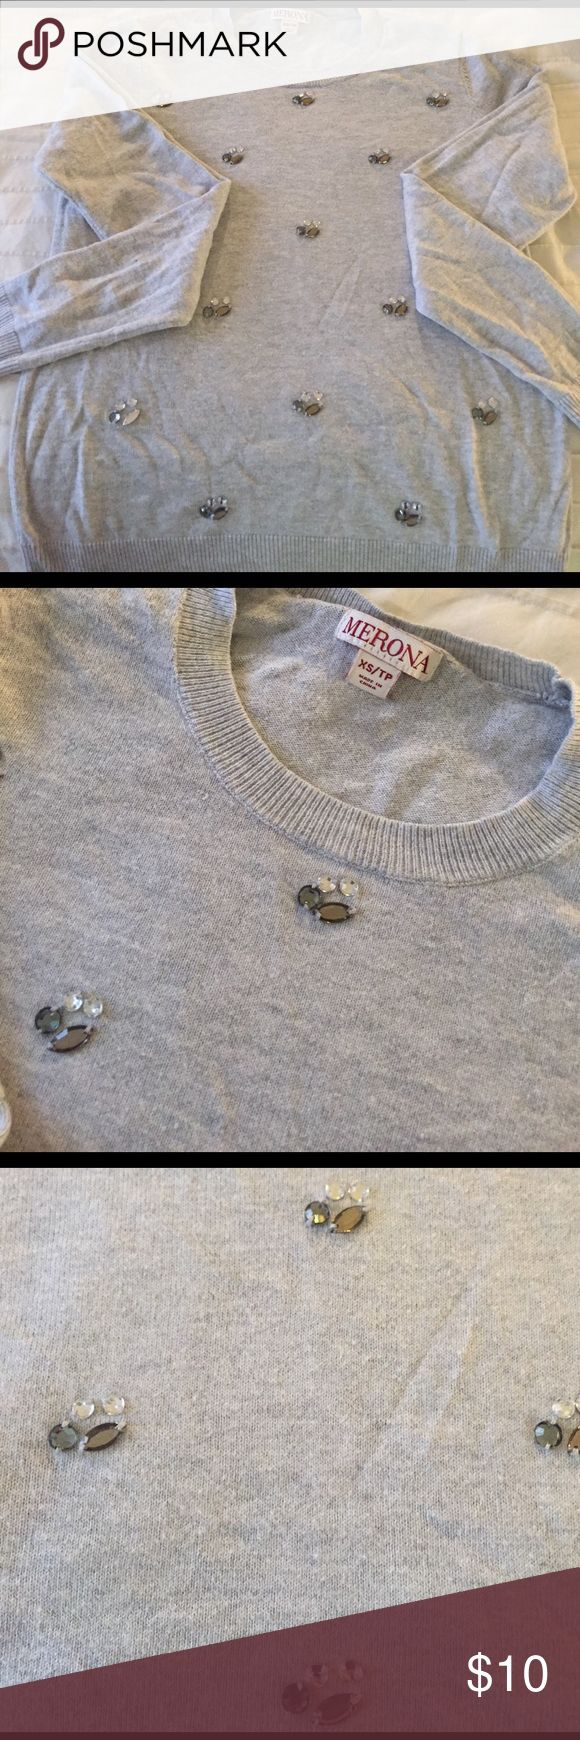 Beautiful never worn gray sweater with gems Beautiful Merona gray sweater with gems. ALL GEMS are still on sweater, none missing. Worn once. Long sleeve. Merona Sweaters